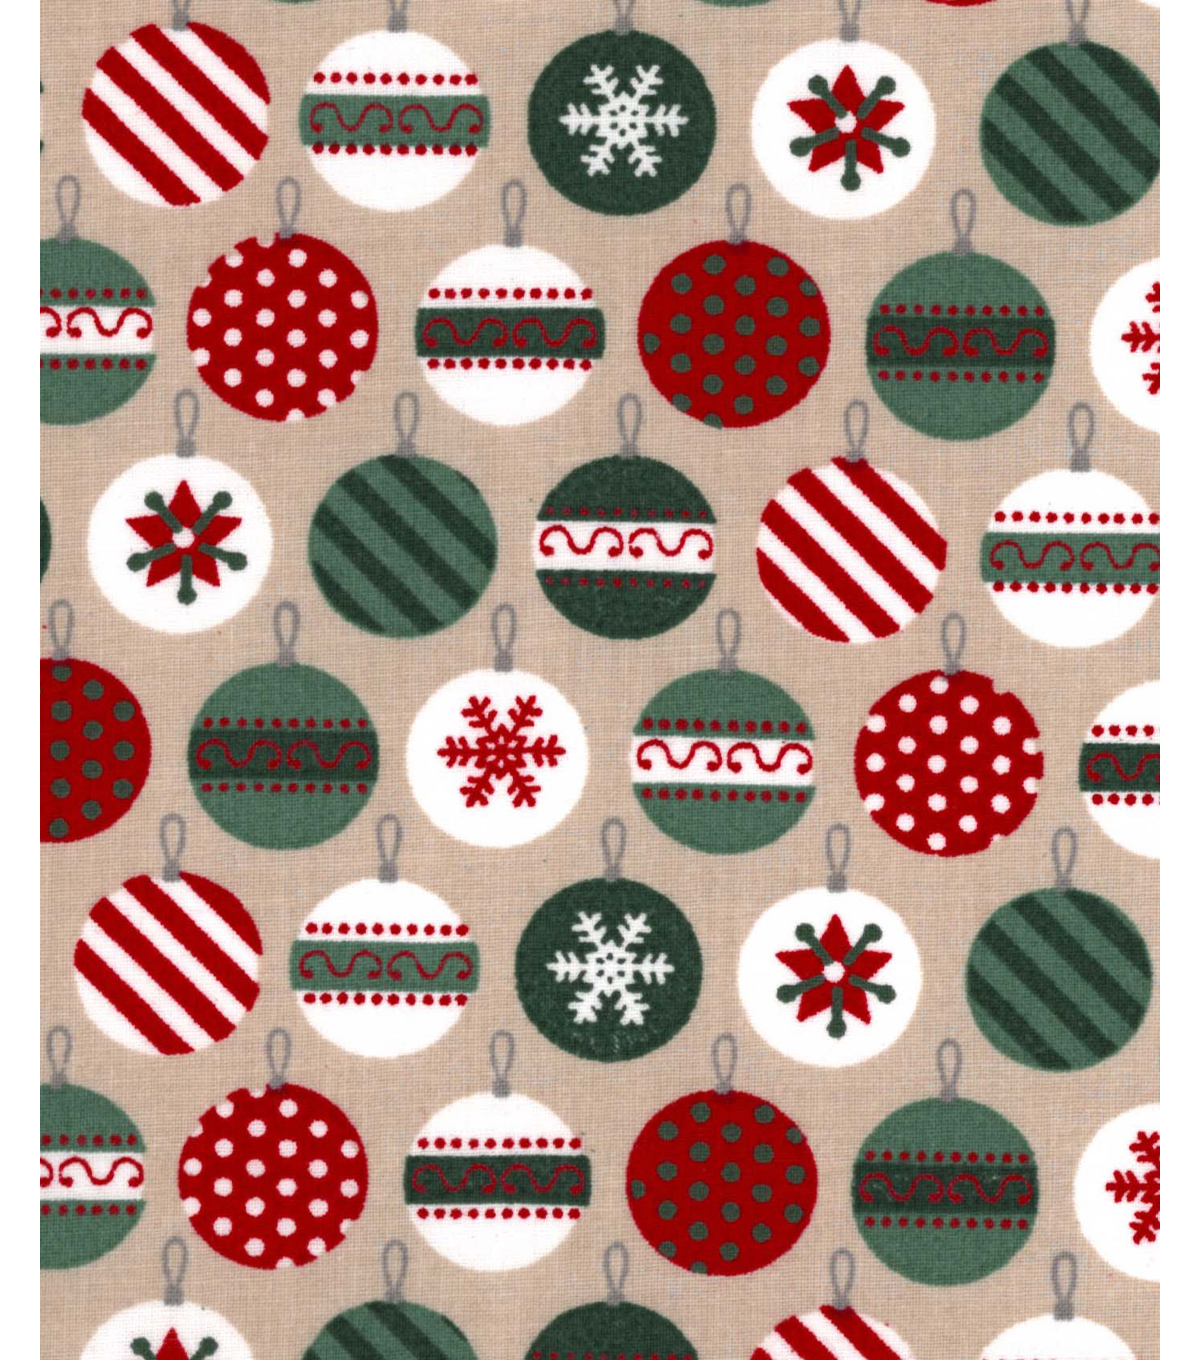 Holiday Showcase™ Christmas Cotton Fabric 43''-Packed Ornaments on Beige